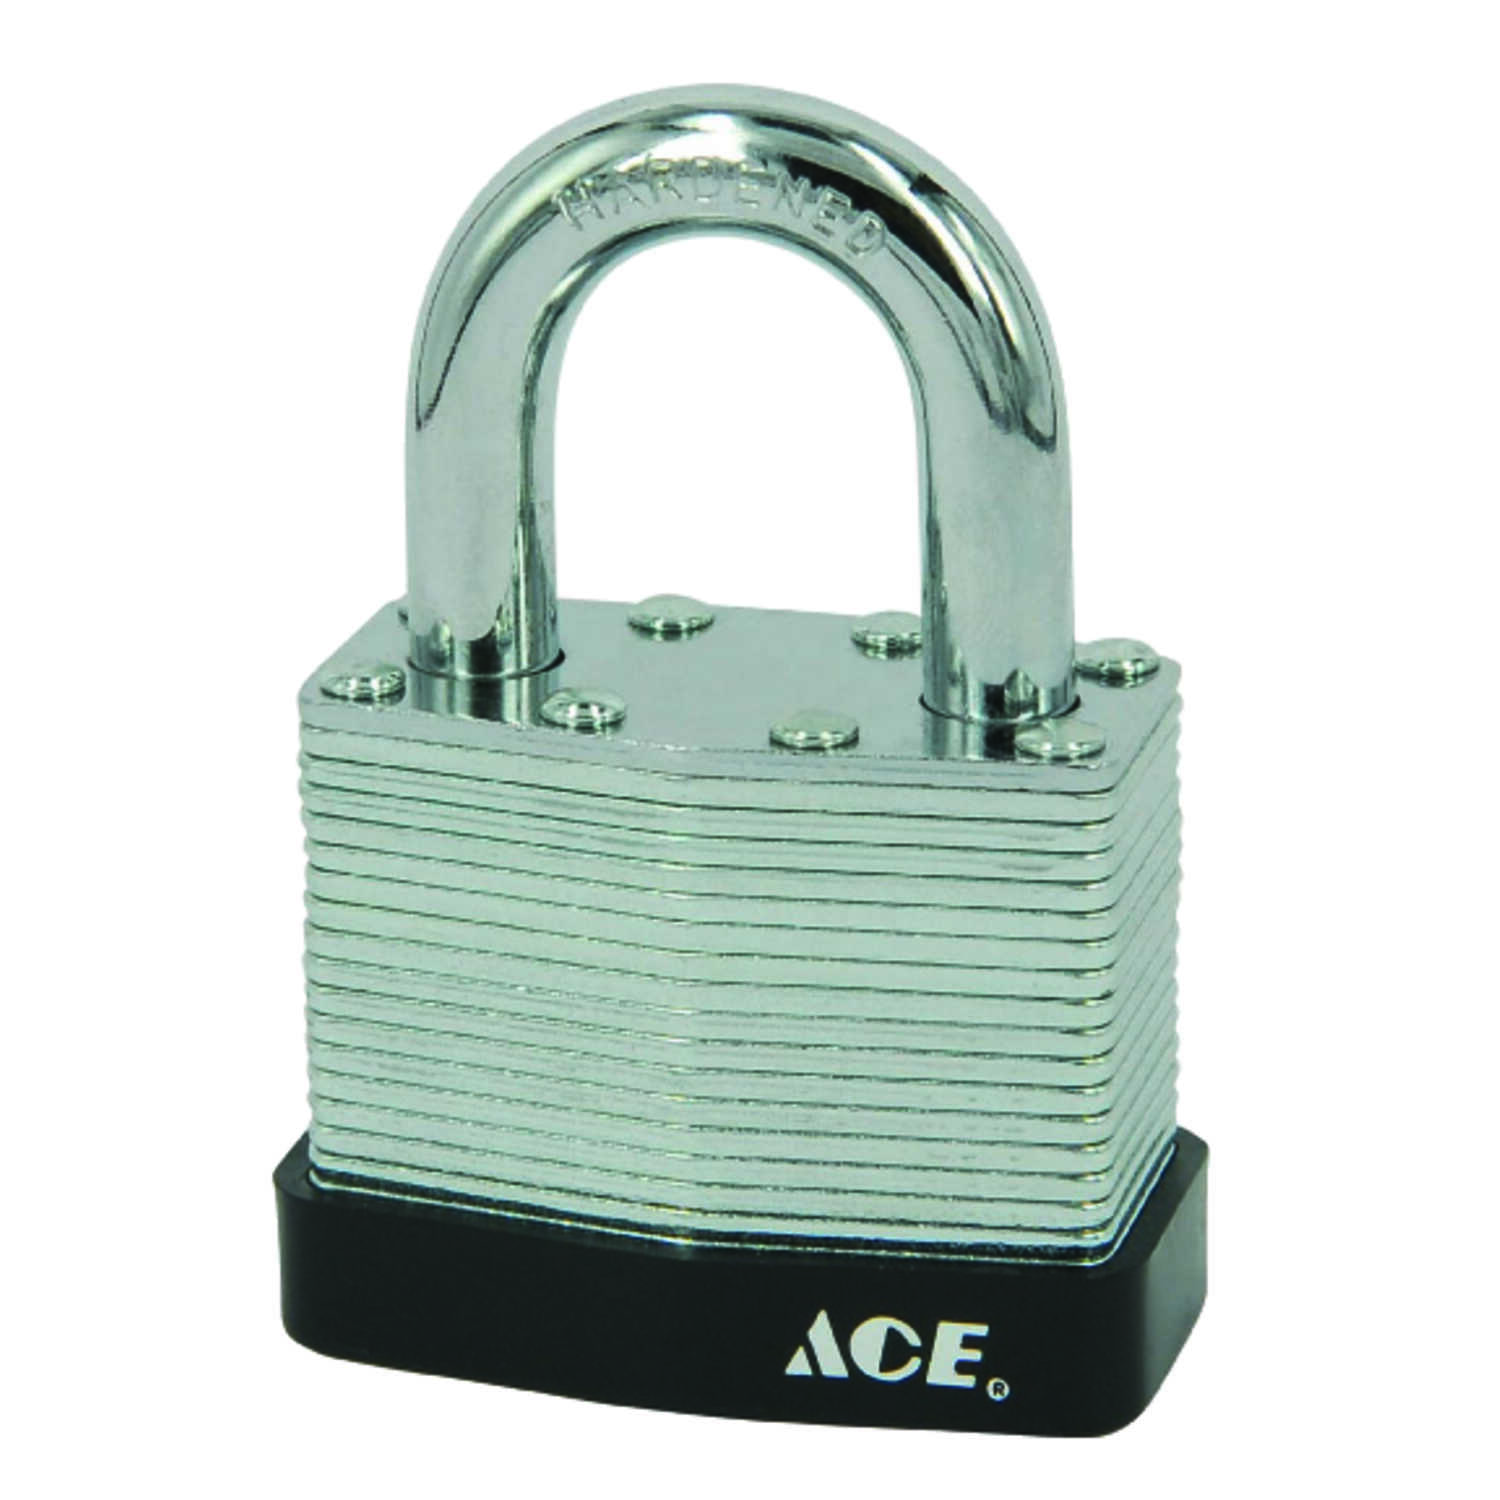 Ace  1-5/16 in. H x 1-9/16 in. W x 7/8 in. L Steel  Double Locking  Padlock